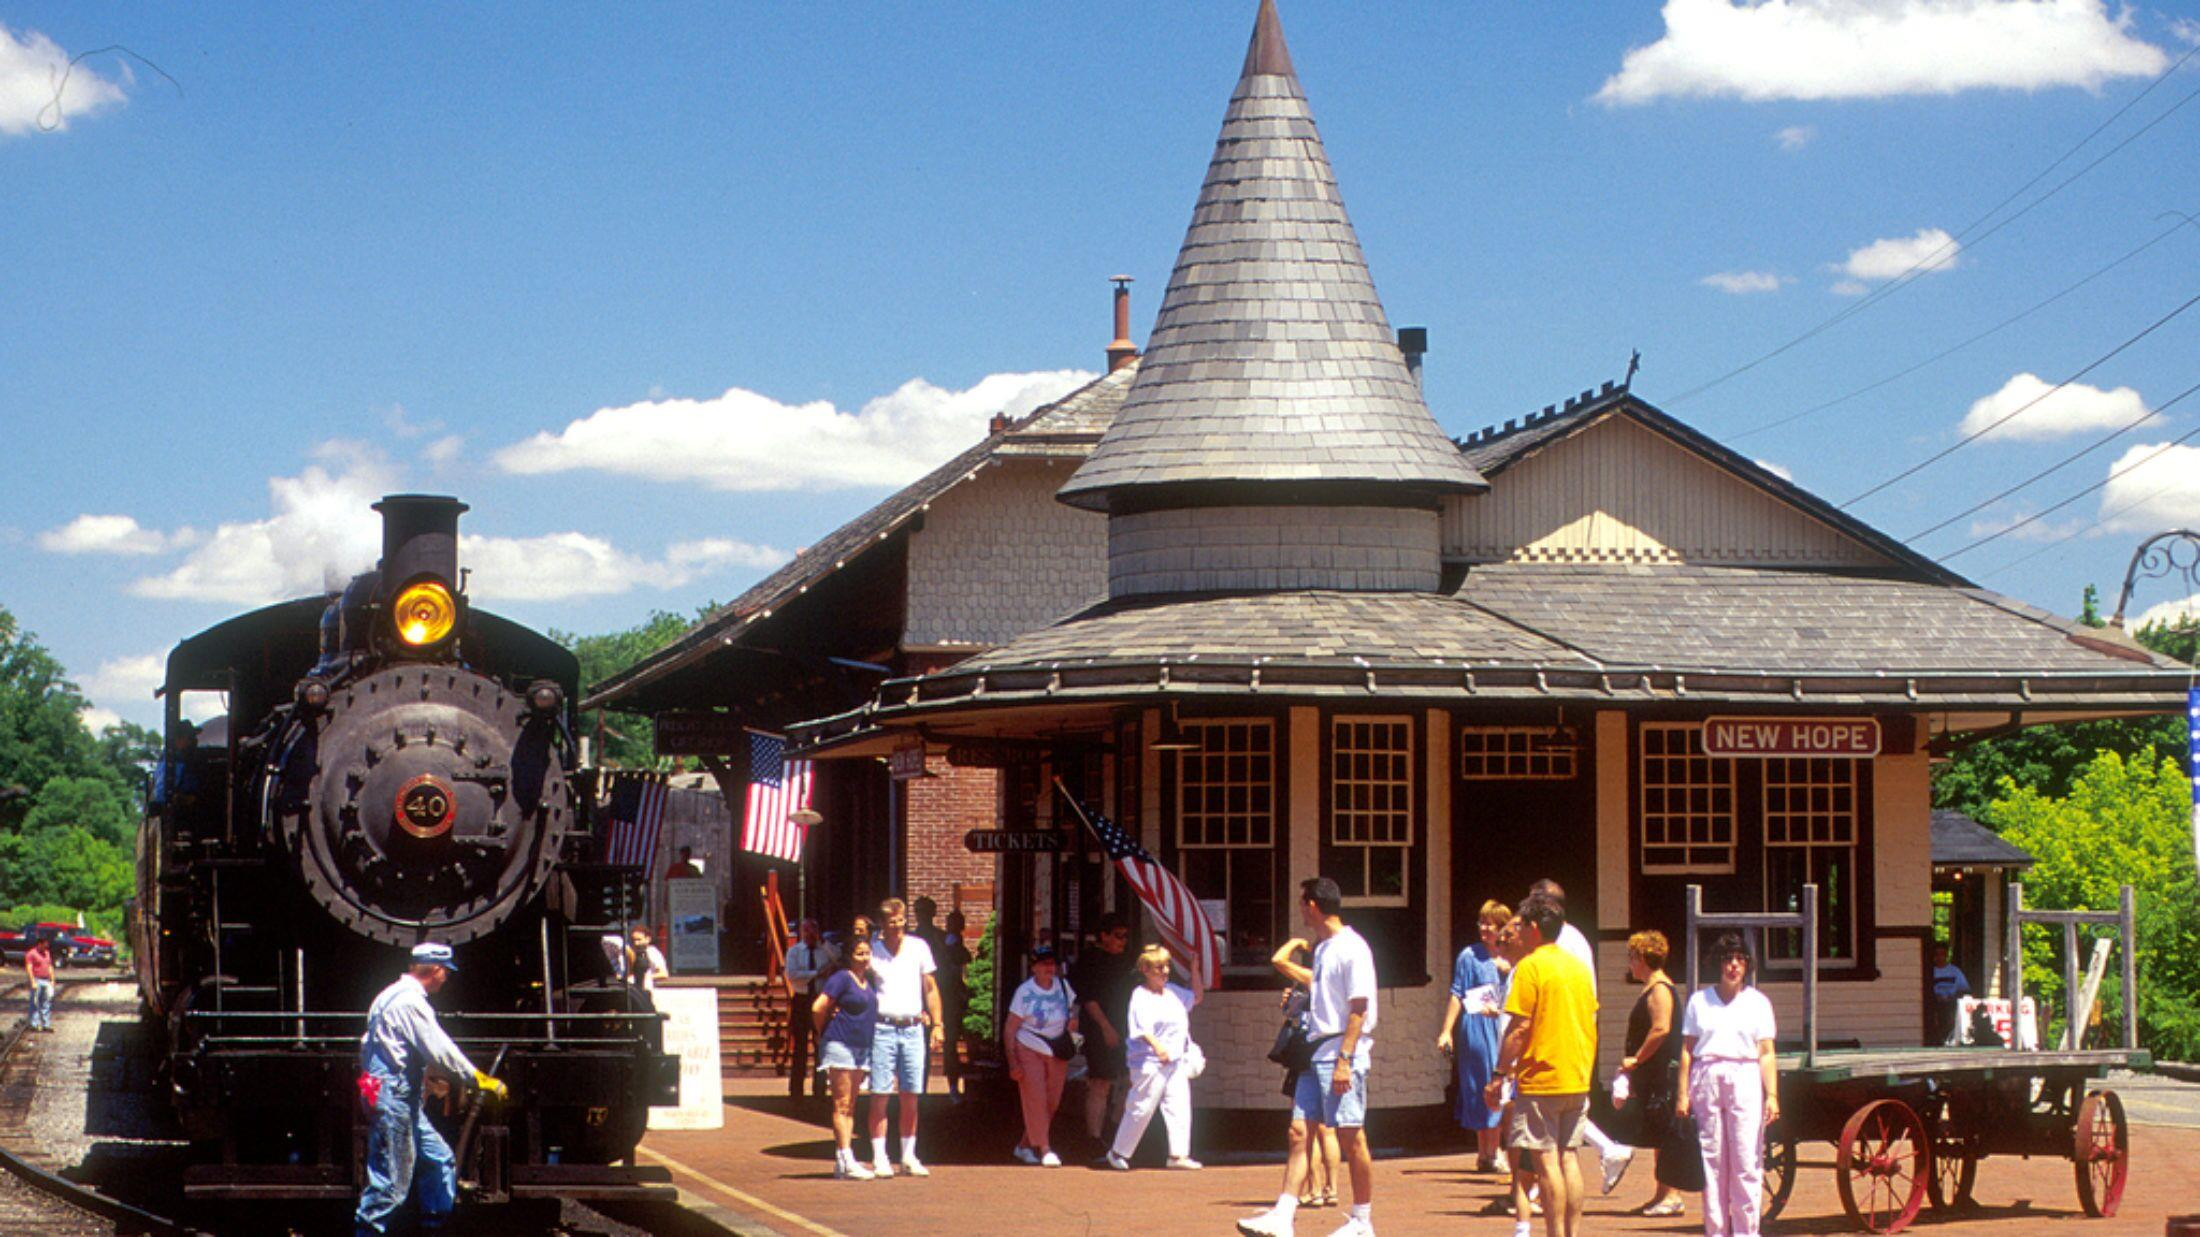 New Hope Boat Rides and New Hope Train Excursions